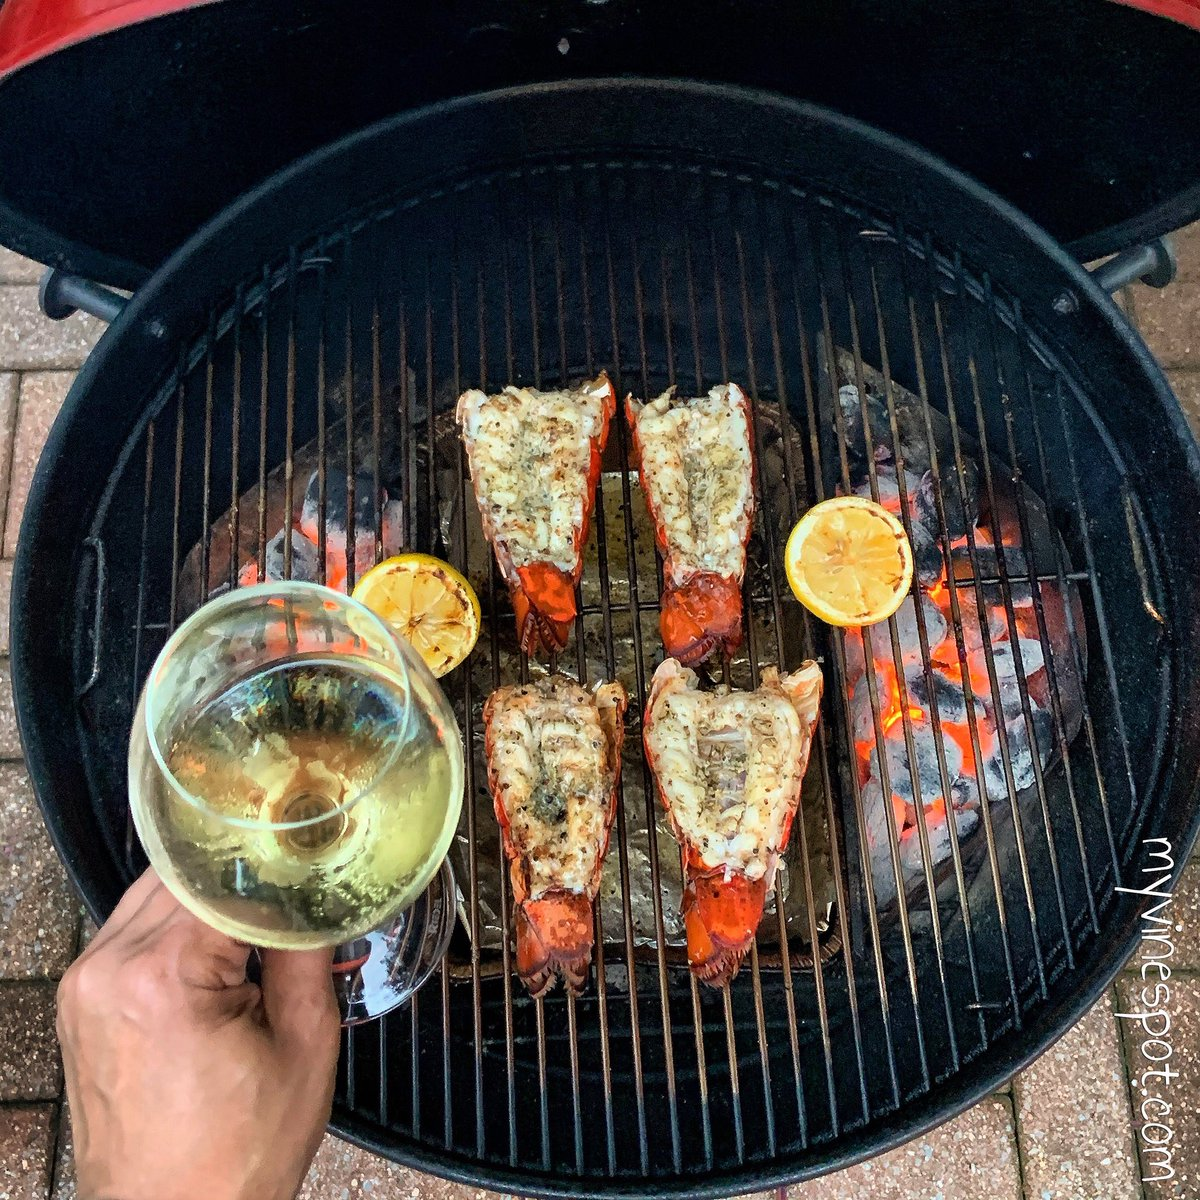 Grilled lobster tails, roasted butternut squash risotto, and a delicious splash of Jean-Jacques Girard Savigny-lès-Beaune on the menu tonight. Cheers!   #lobstertails #WhiteBurgundy #Chardonnay #foodandwine  #WeberForLife #WeberKettle #WeberGrills #Yum #wine https://t.co/Ro7PEkH4U3